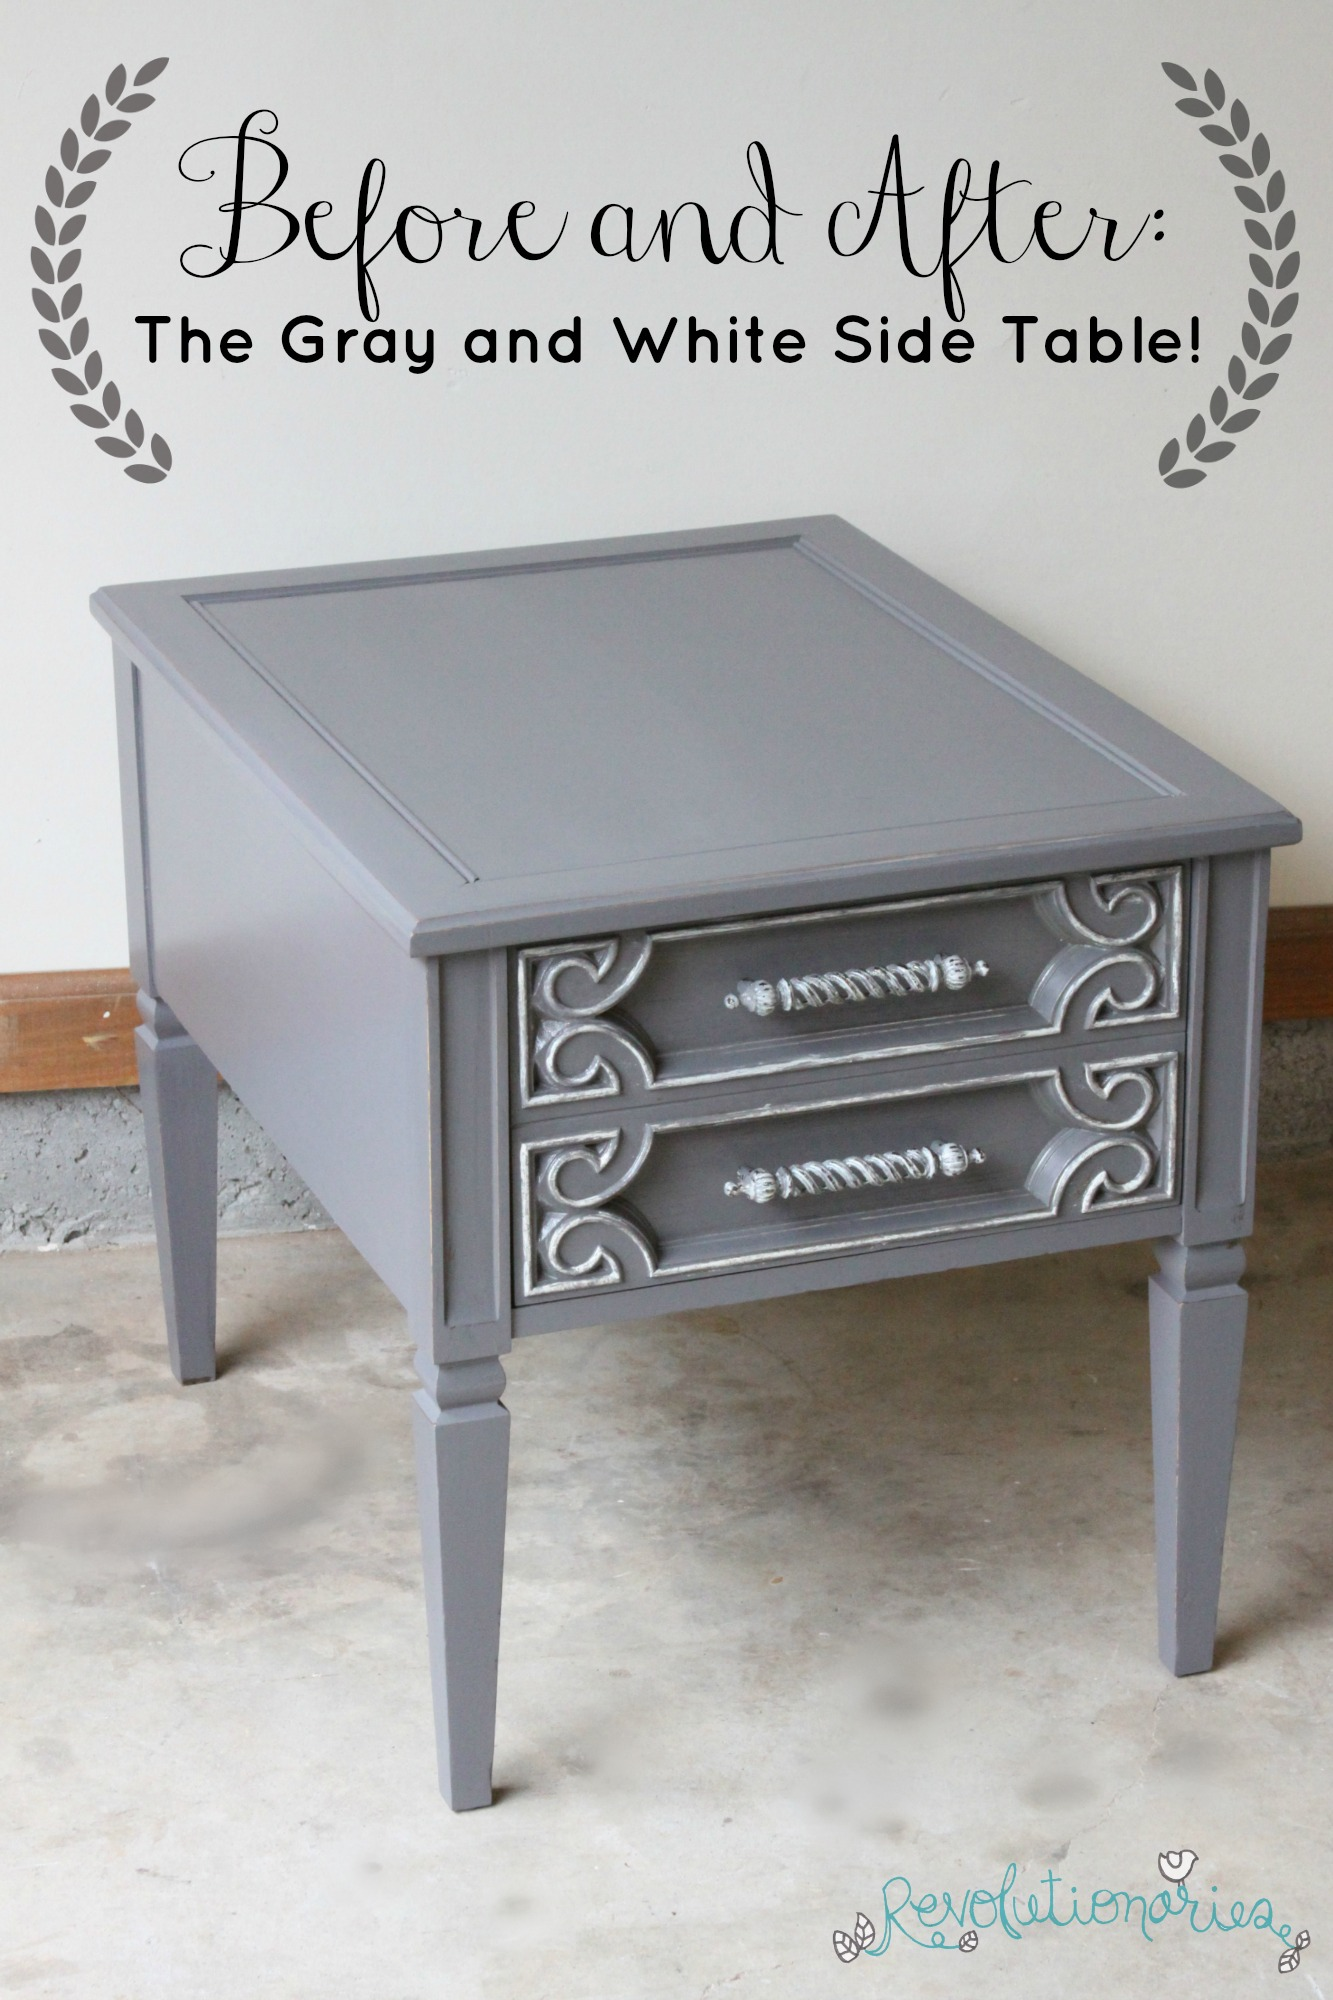 before-and-after-the-gray-and-white-side-table-1.jpg